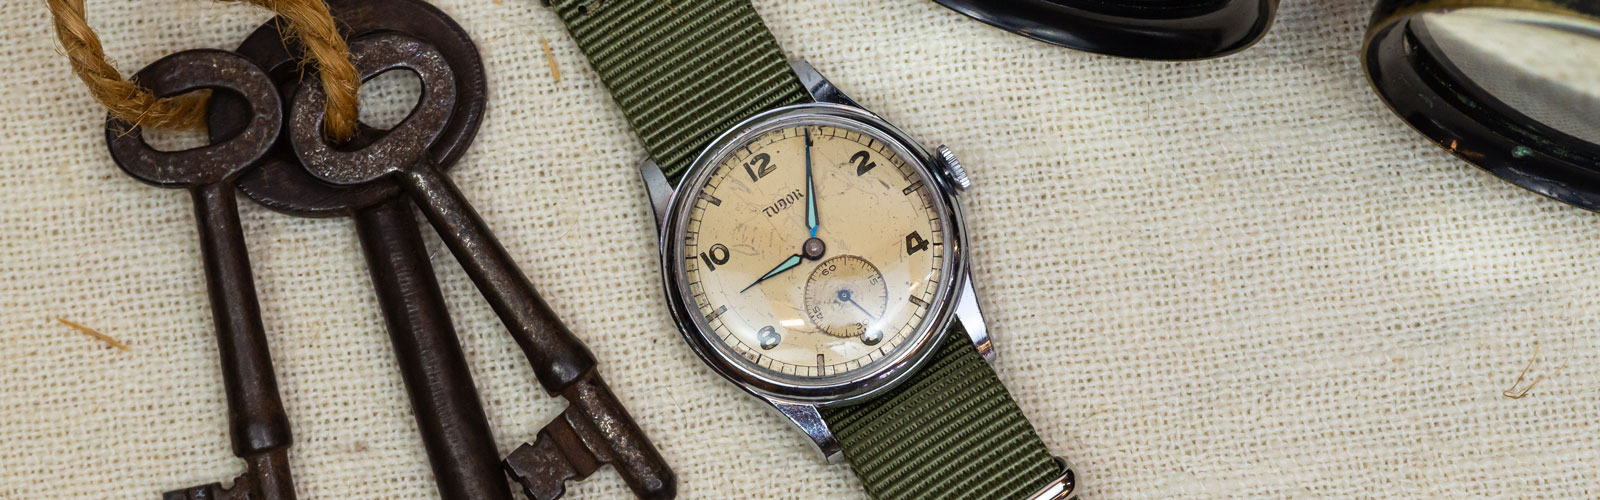 Pre-loved and secondhand watches